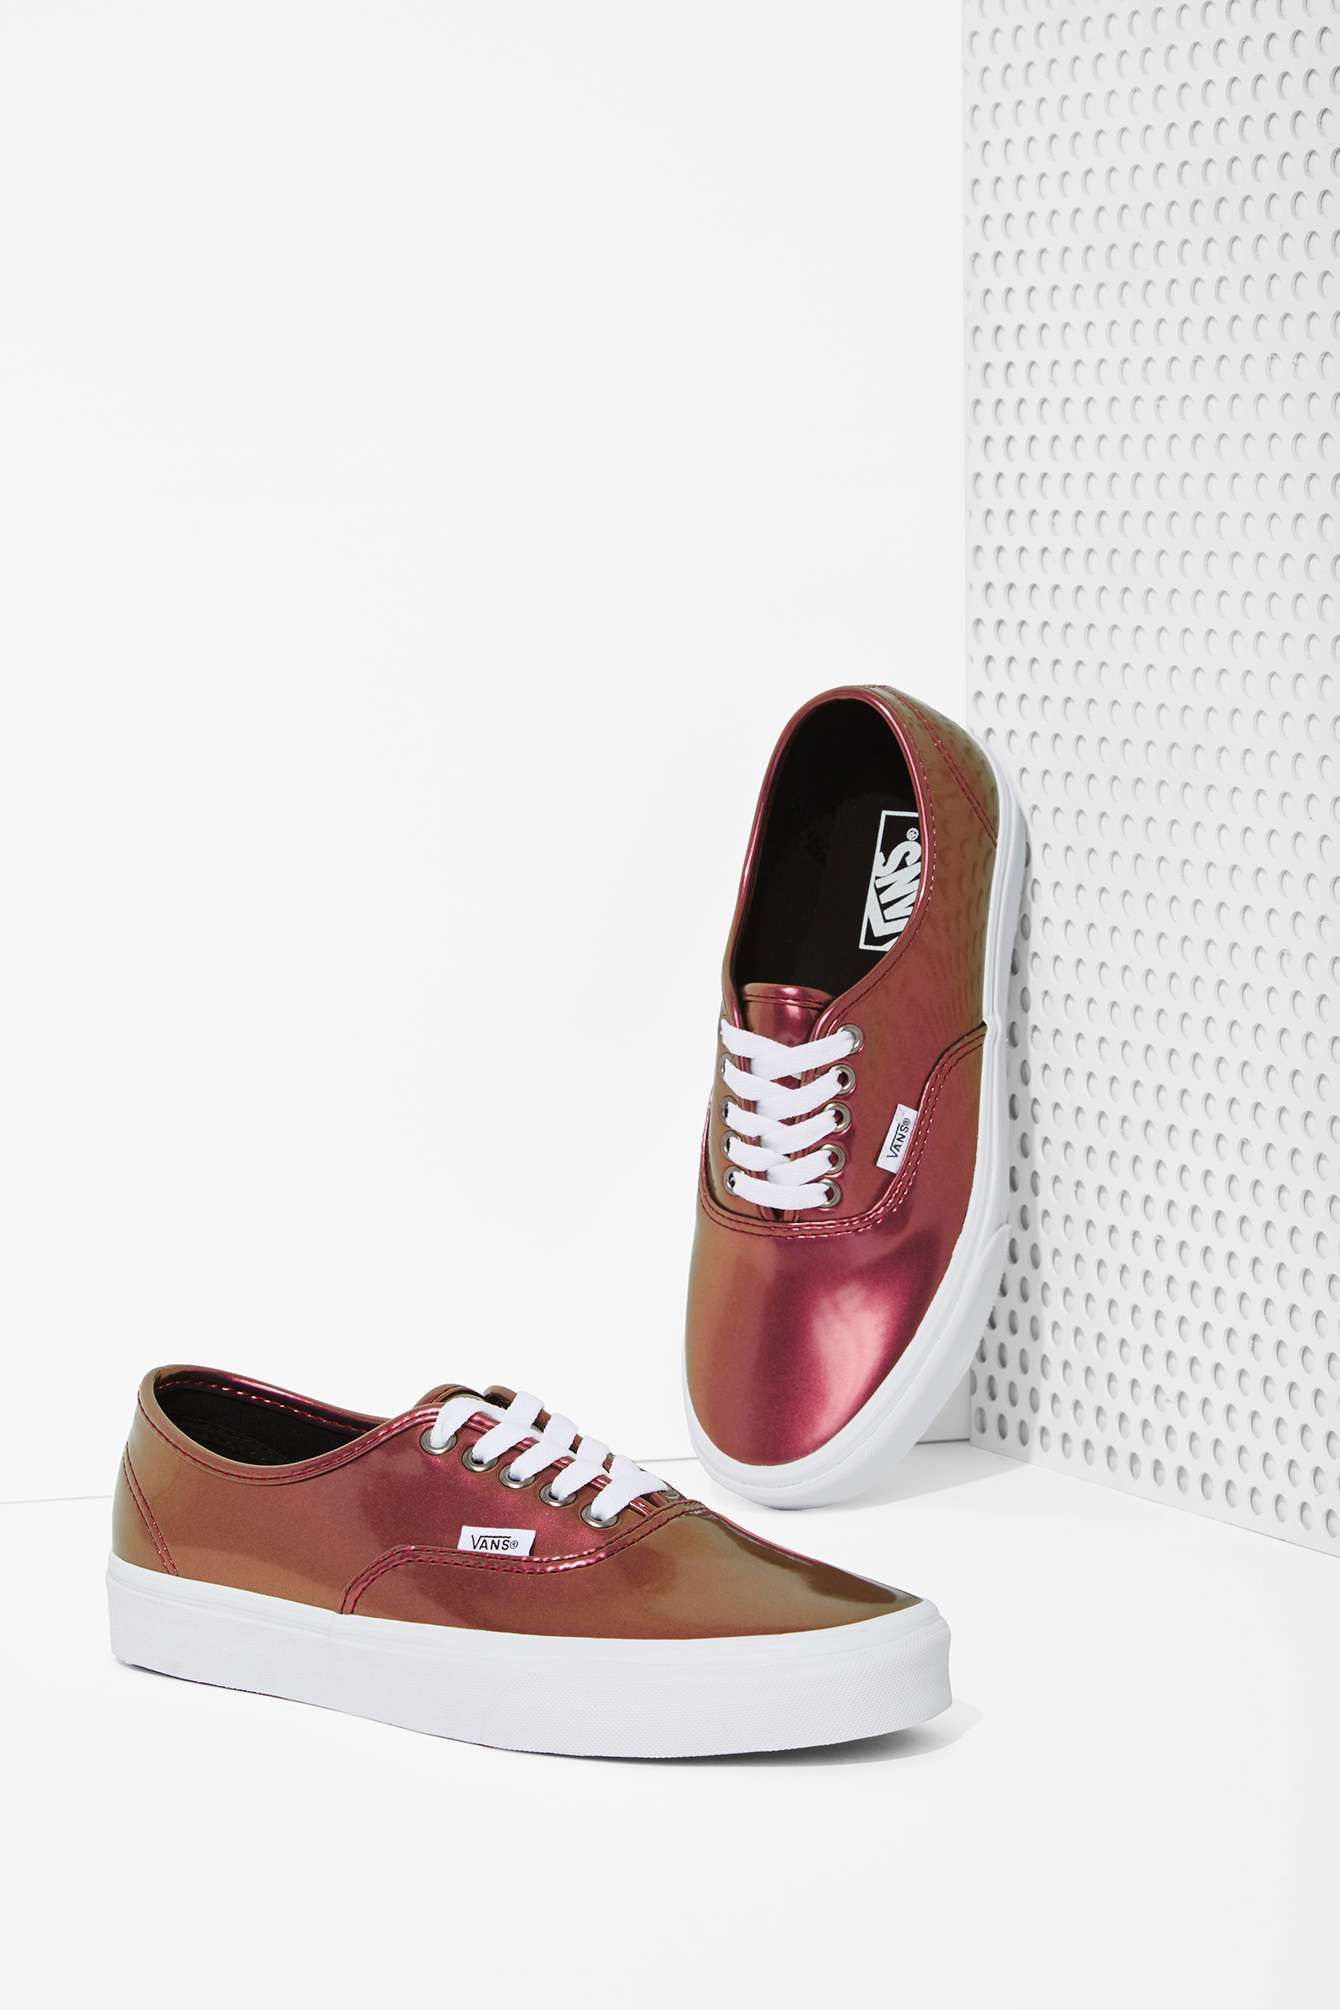 a58e4b1c24 Vans Authentic Sneaker - Metallic Pink